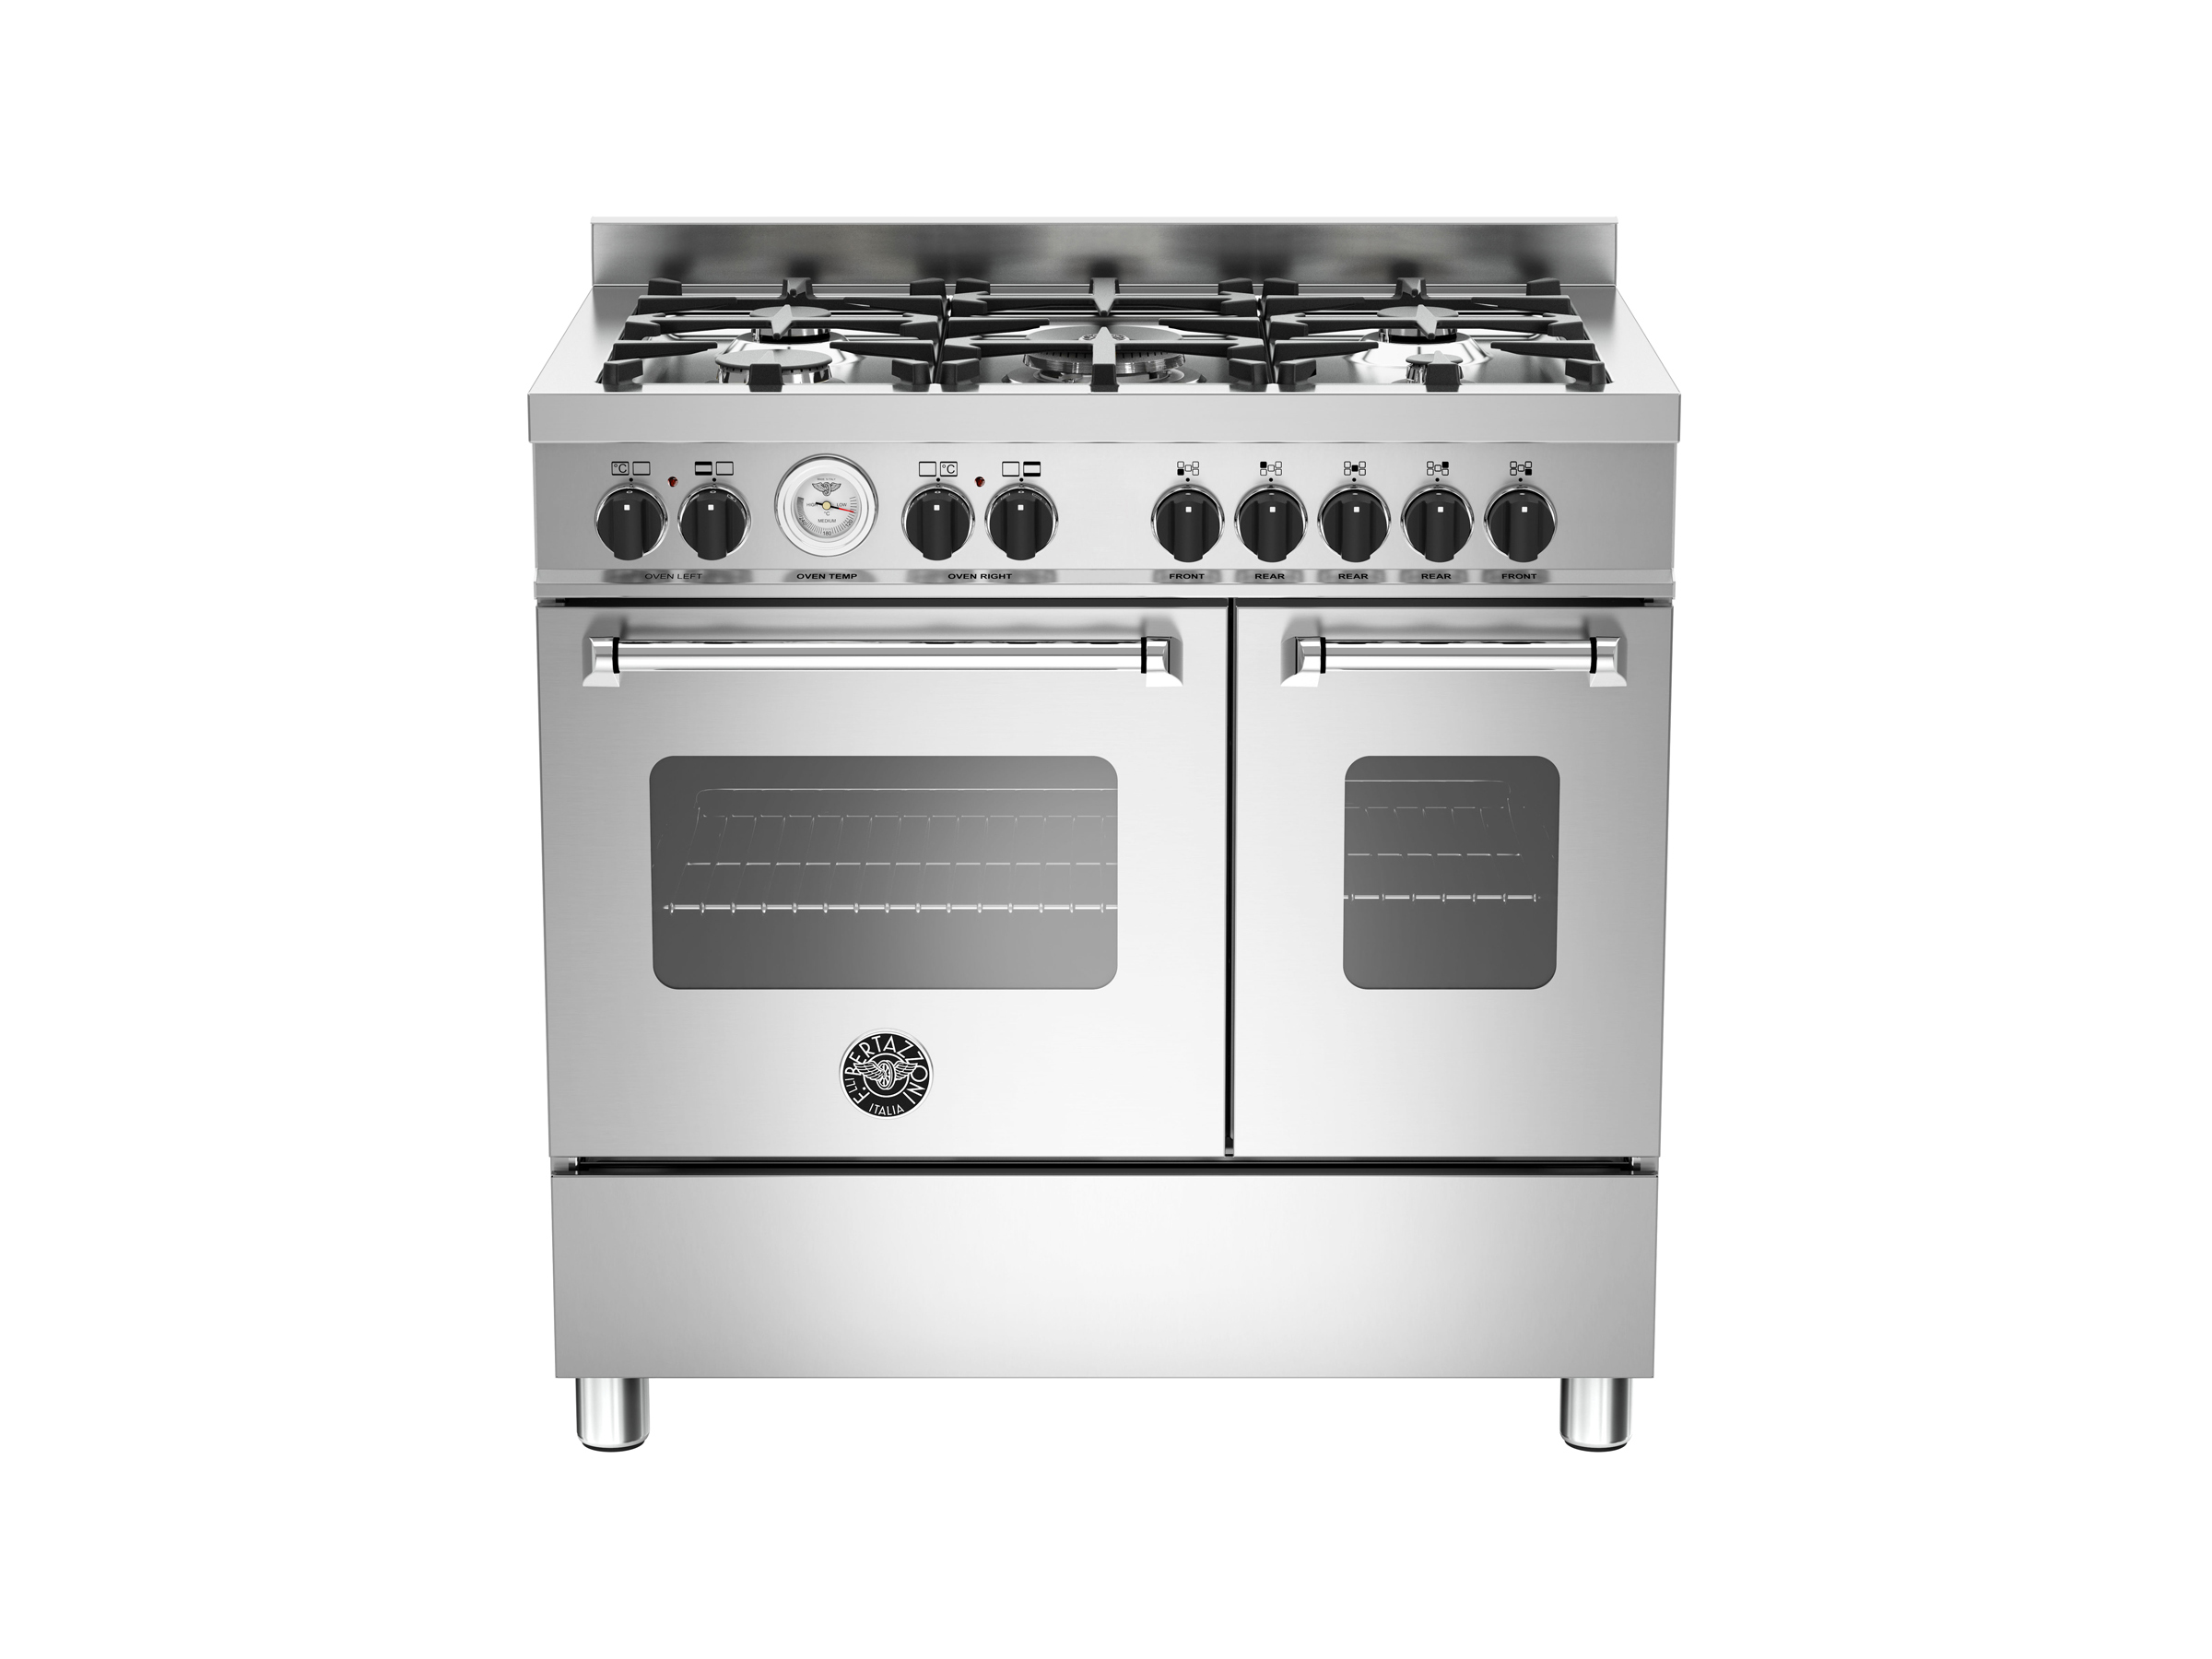 90 cm 5-burner electric double oven | Bertazzoni - Stainless